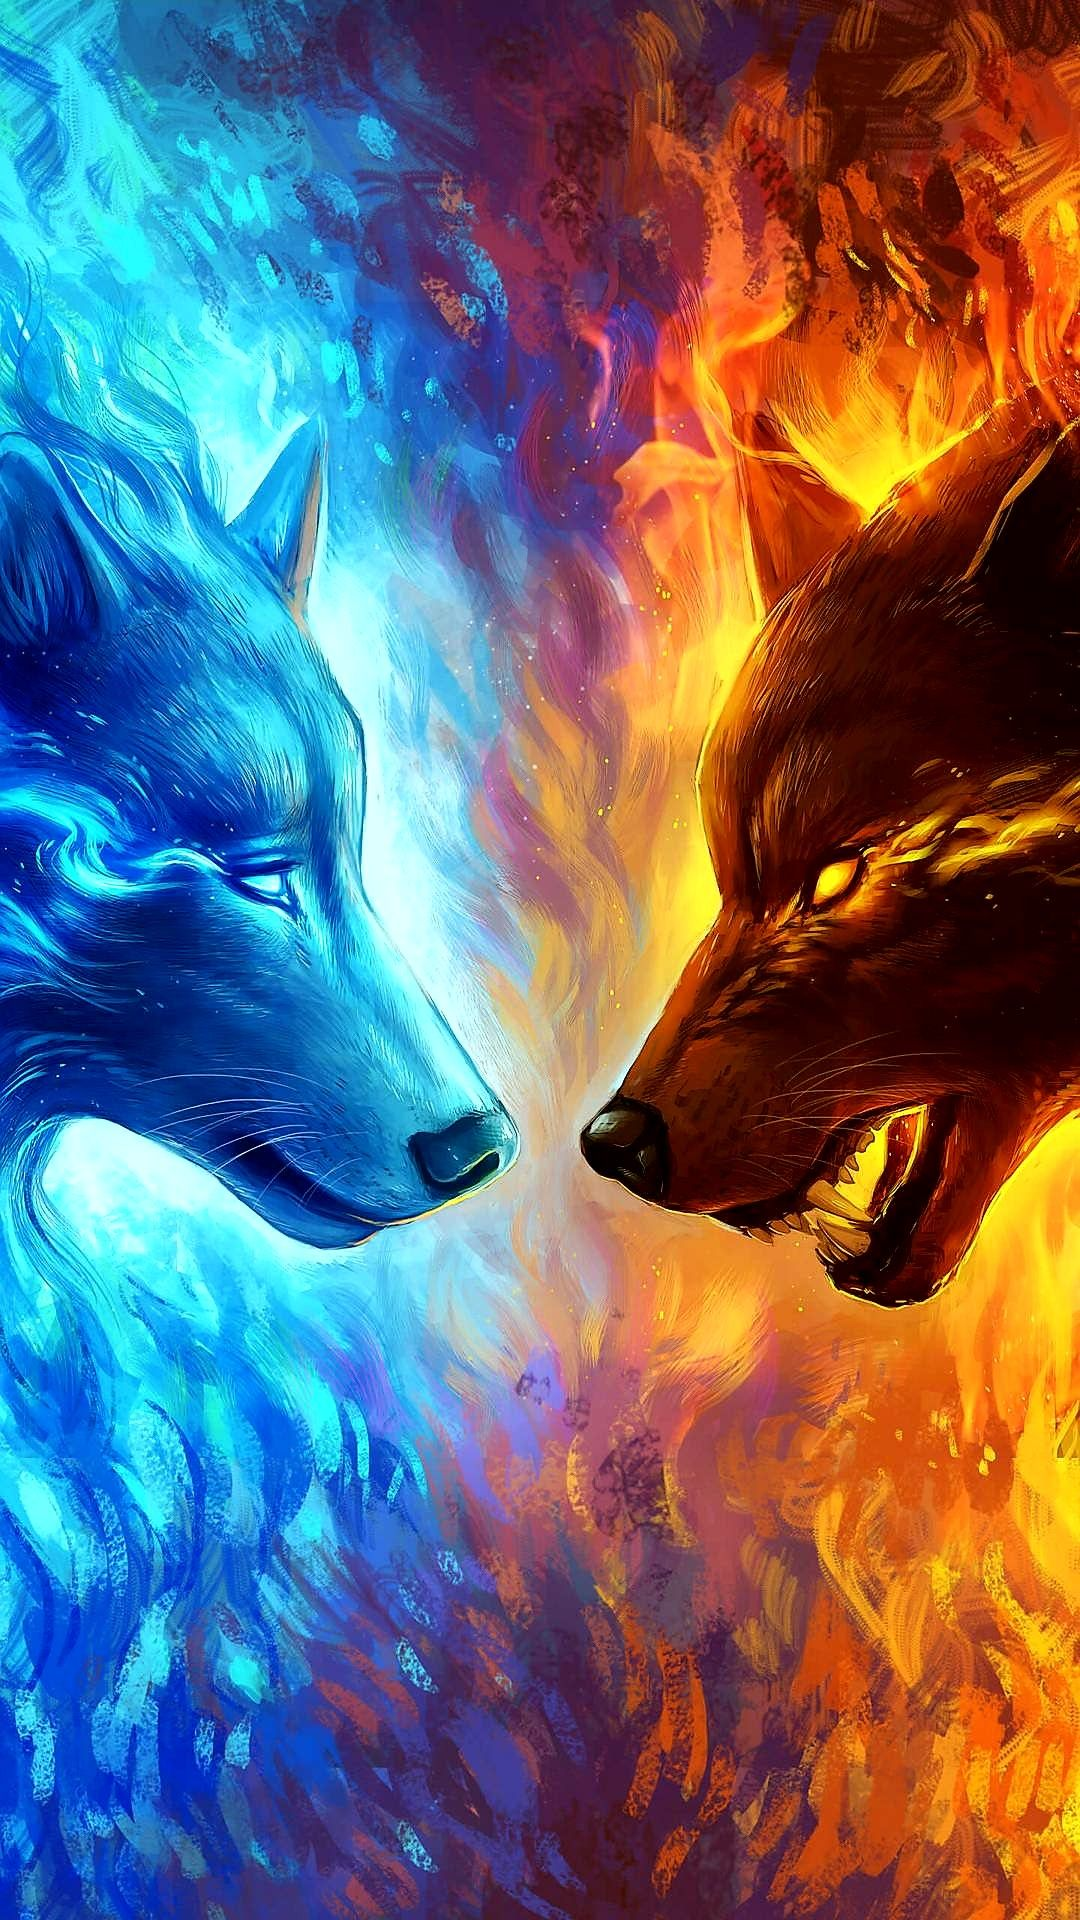 Pin by river on wolfs wolf anime wolf art - Anime wolf wallpaper ...